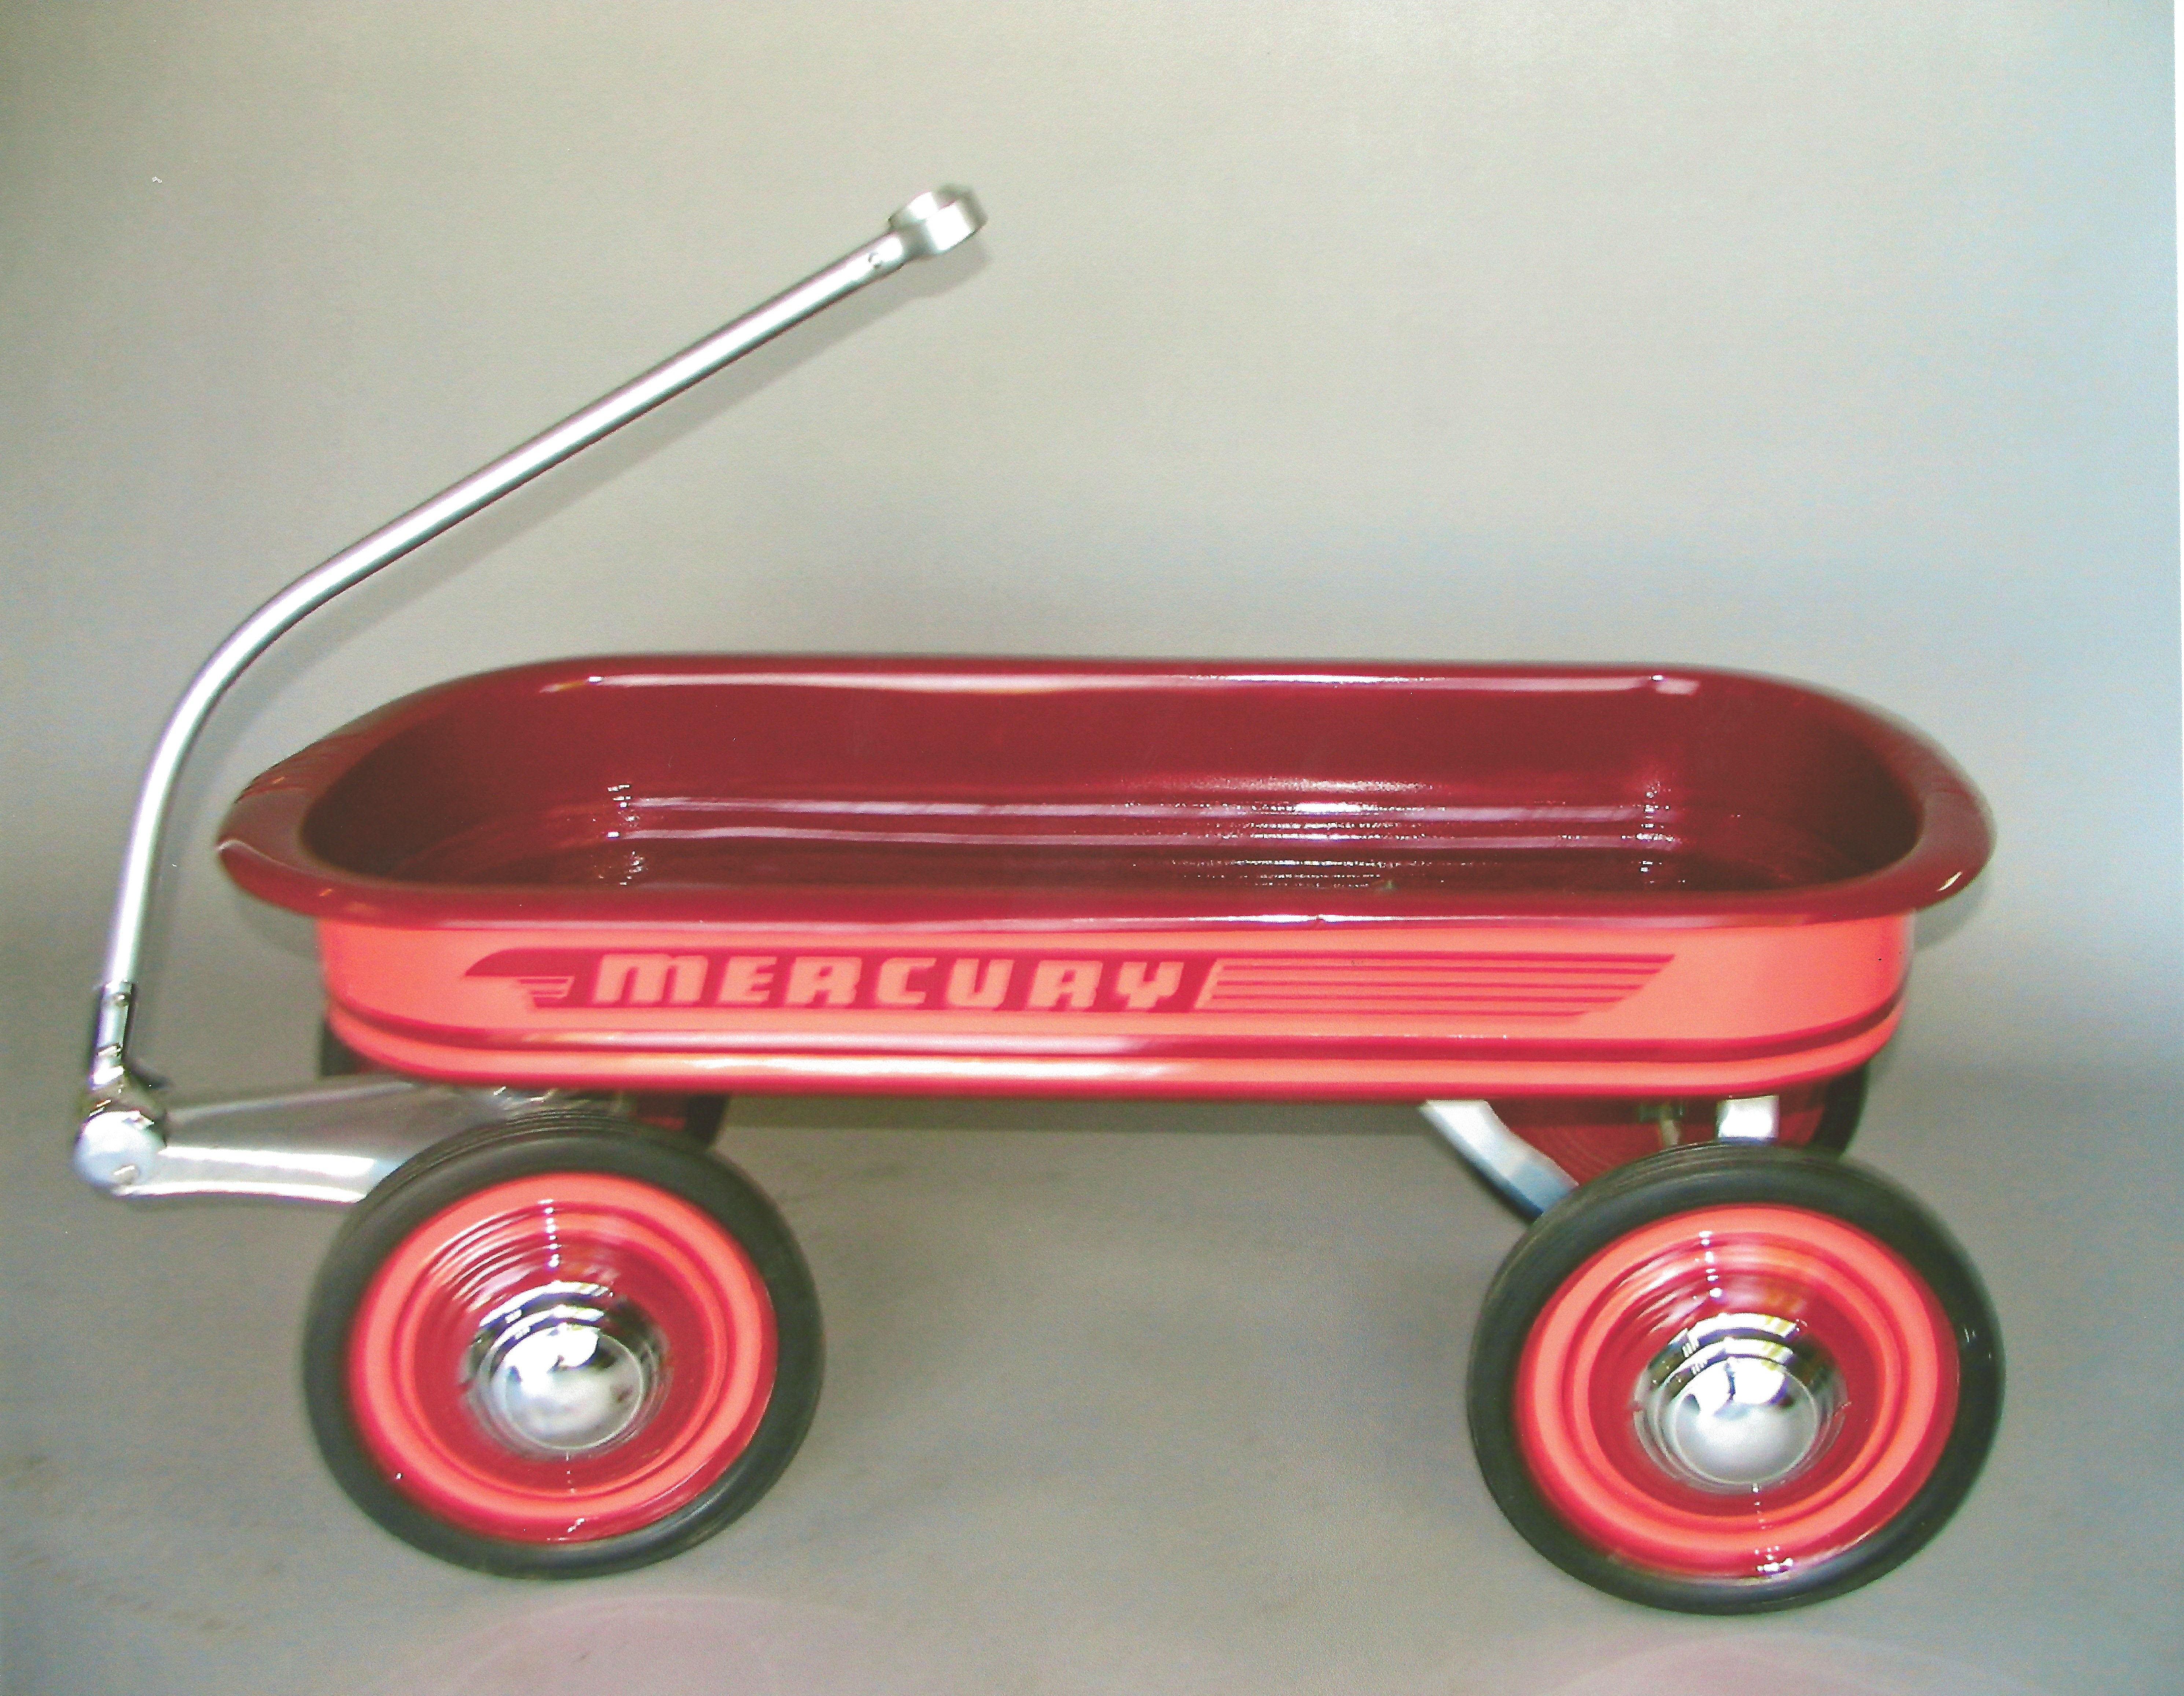 Claasic vintage toys vintage toys second shout out http www - Early 1950s Mercury Murray Ohio Mfg Co Old Wagonsradio Flyerpedal Carsvintage Toysmercuryohio1950s